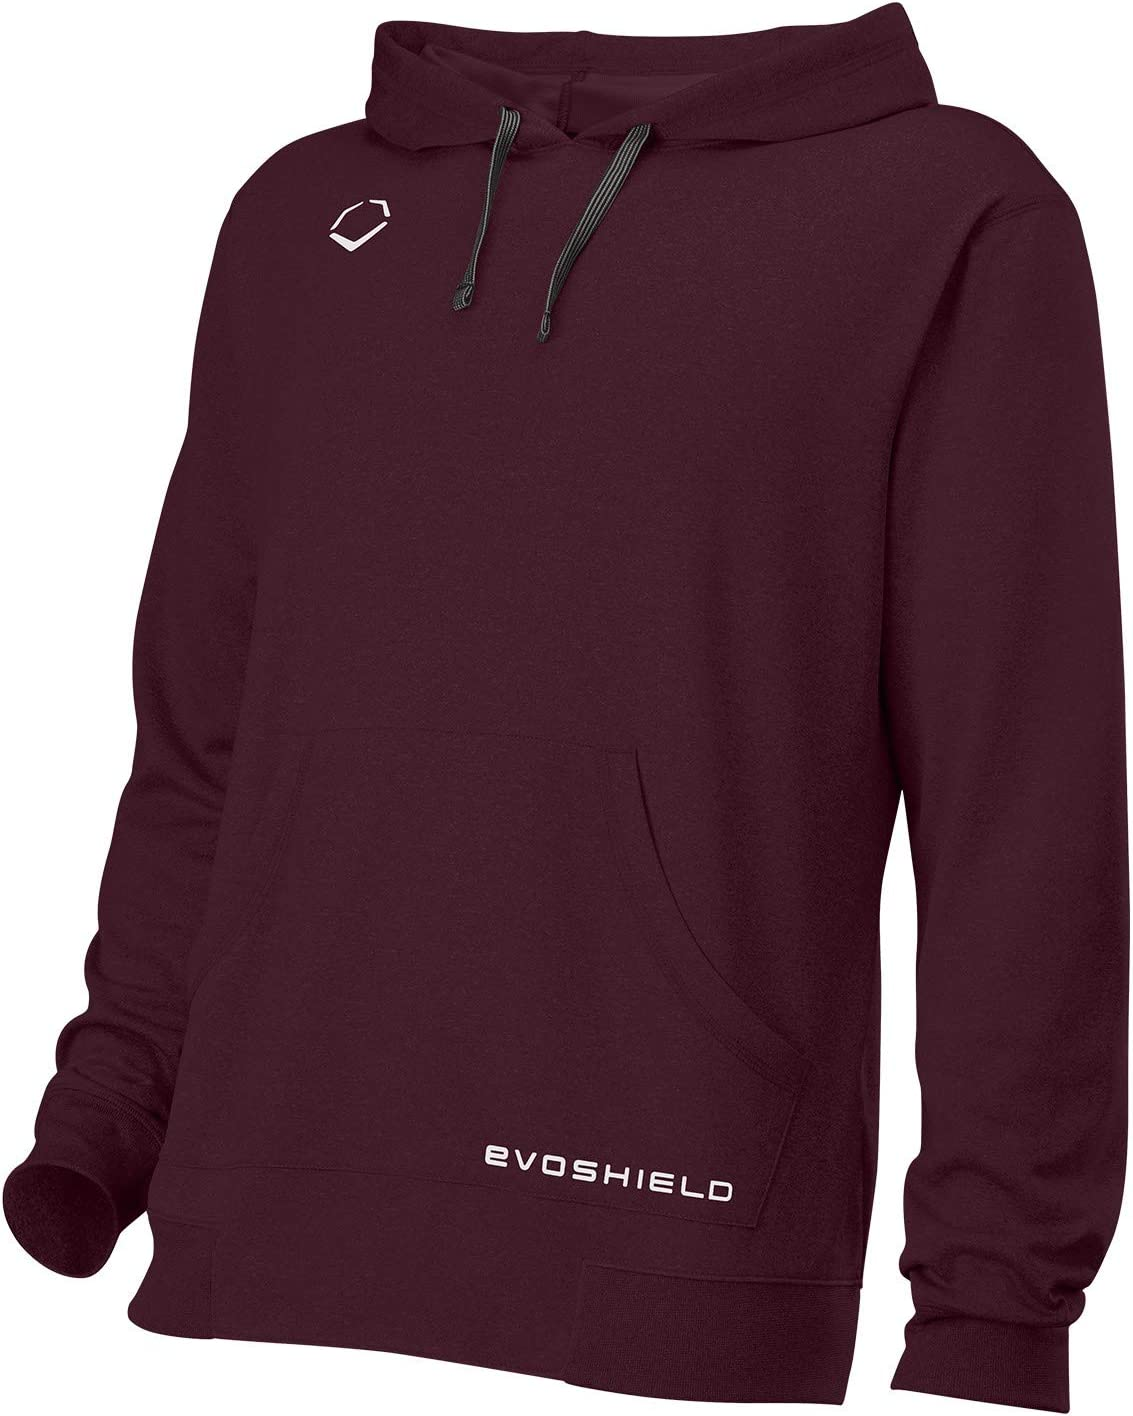 EvoShield Adult and Youth Pro Team Hoodie